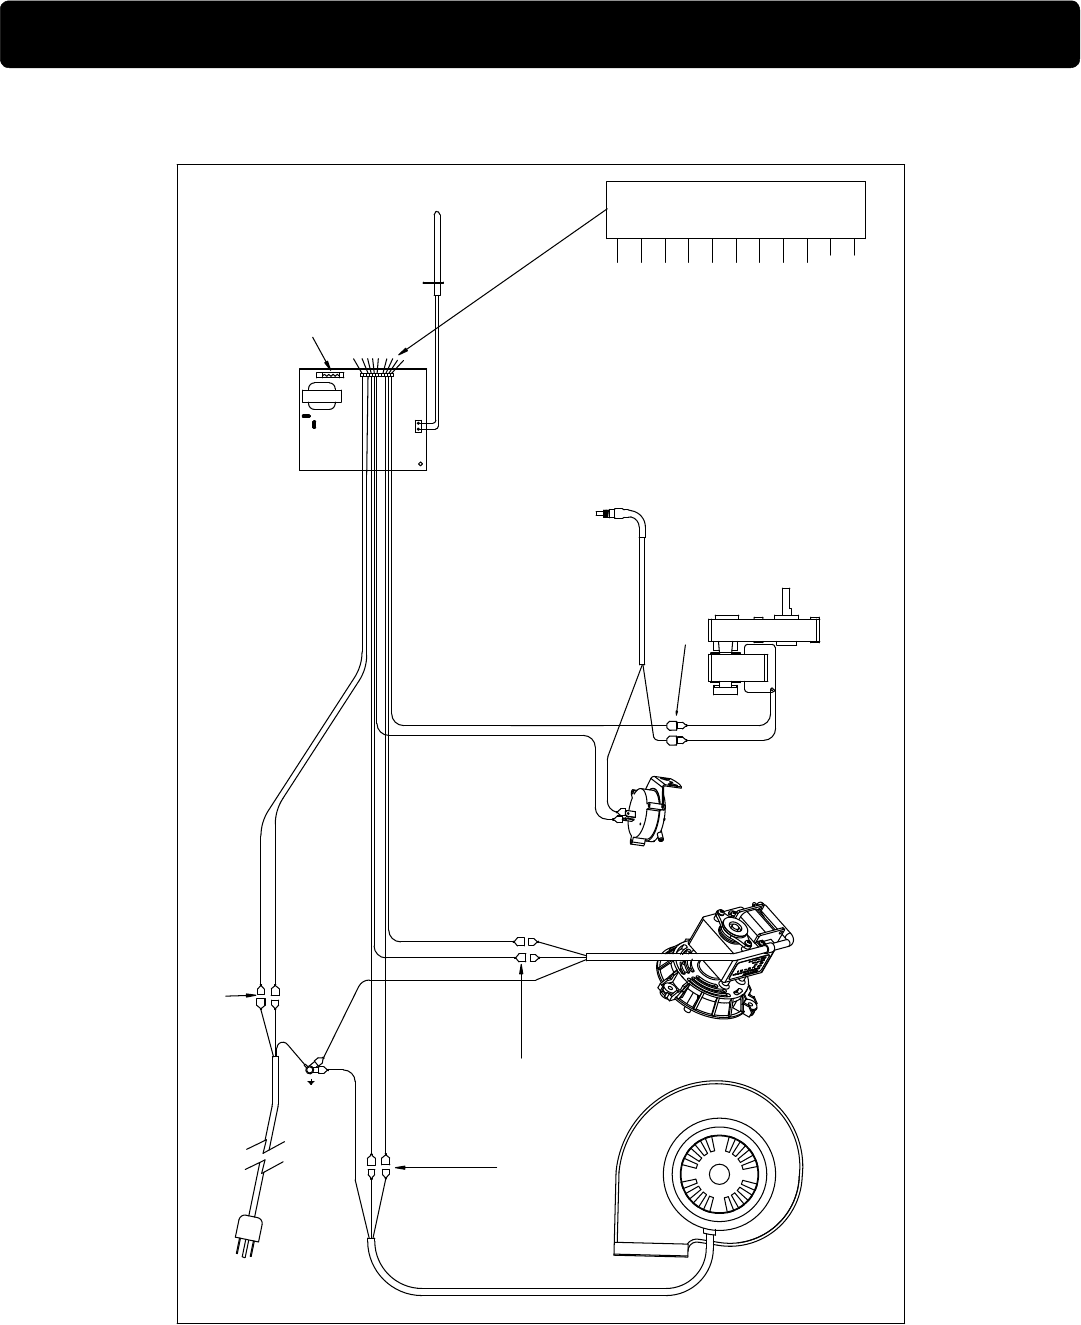 Harman Pp38 Wiring Diagram